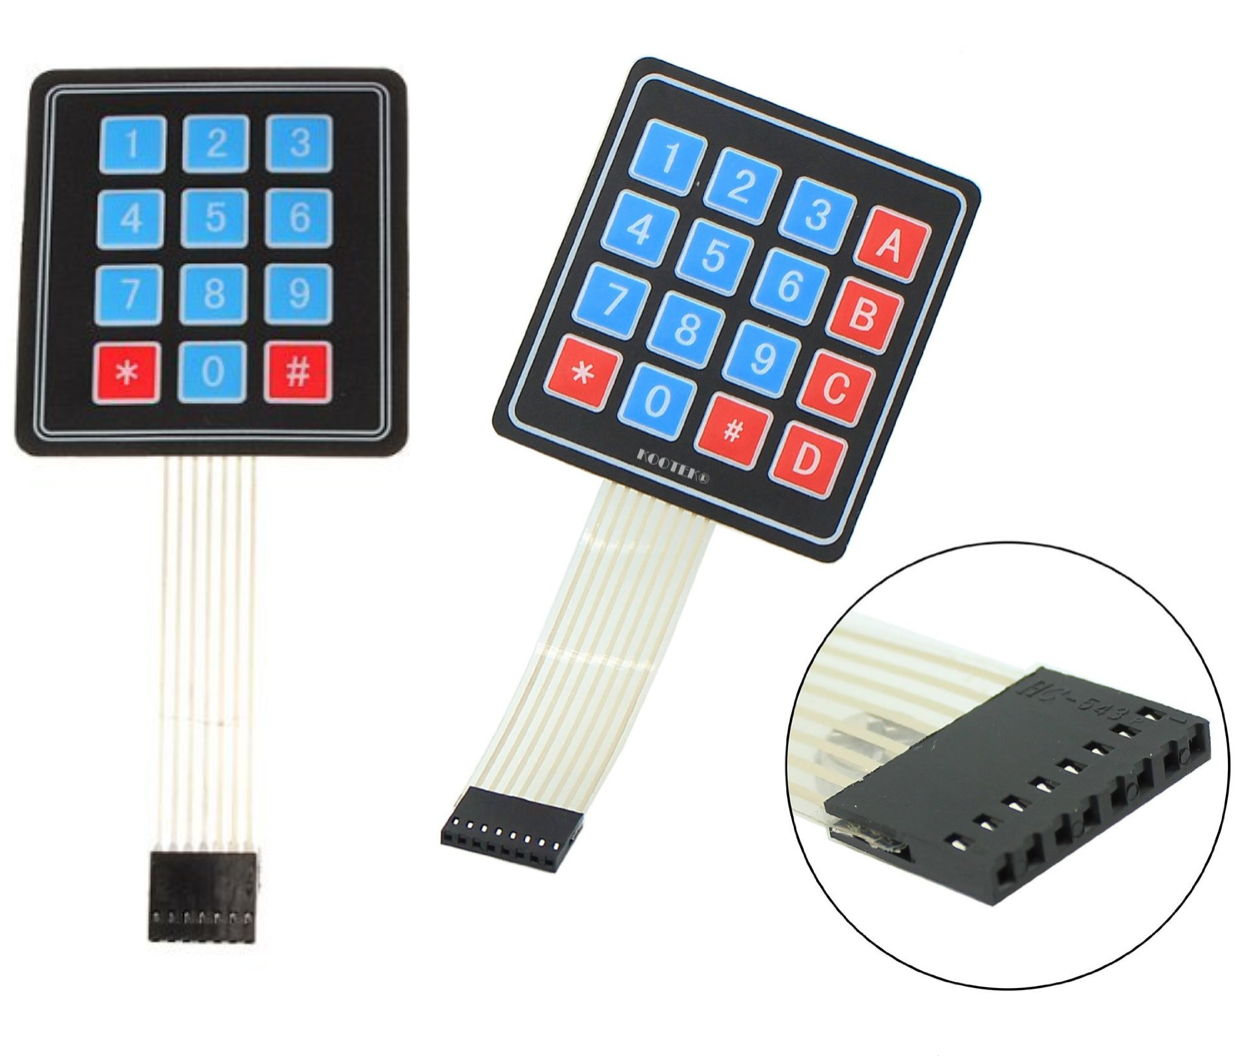 Another alternative inputs in case I could not get my phone's keypad to work:  Left:  4x3 Matrix 12-Key Array Membrane Switch Keypad Keyboard    Right:  4x4 Universial 16 Key Switch Keypad Keyboard For Arduino